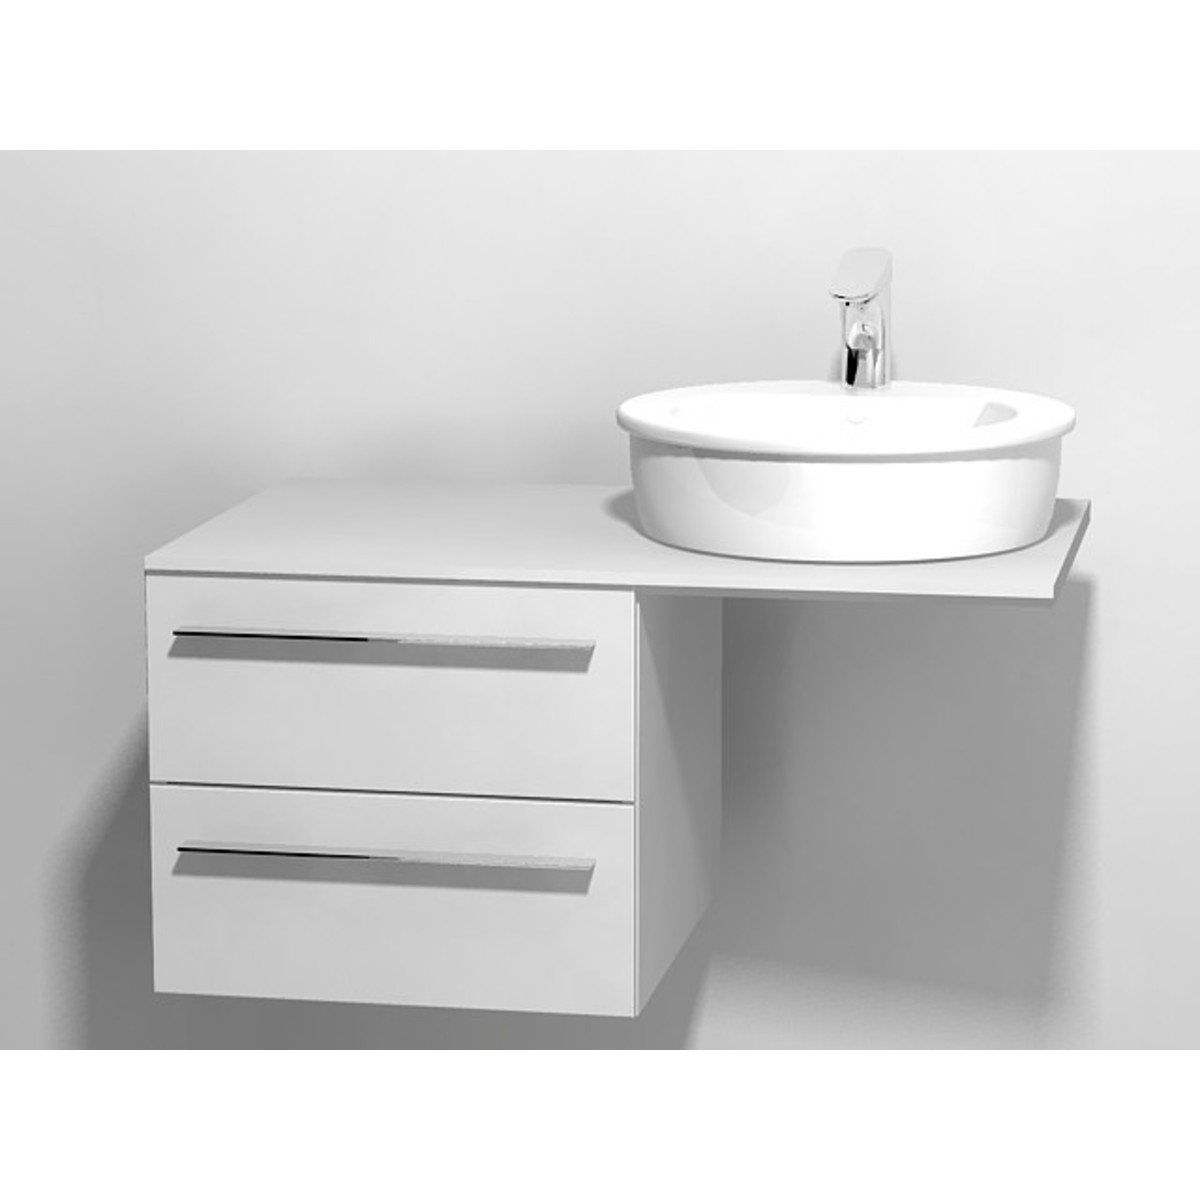 duravit x large meuble sous lavabo pour console avec 2 tiroirs 50x545x44cm blanc brillant. Black Bedroom Furniture Sets. Home Design Ideas